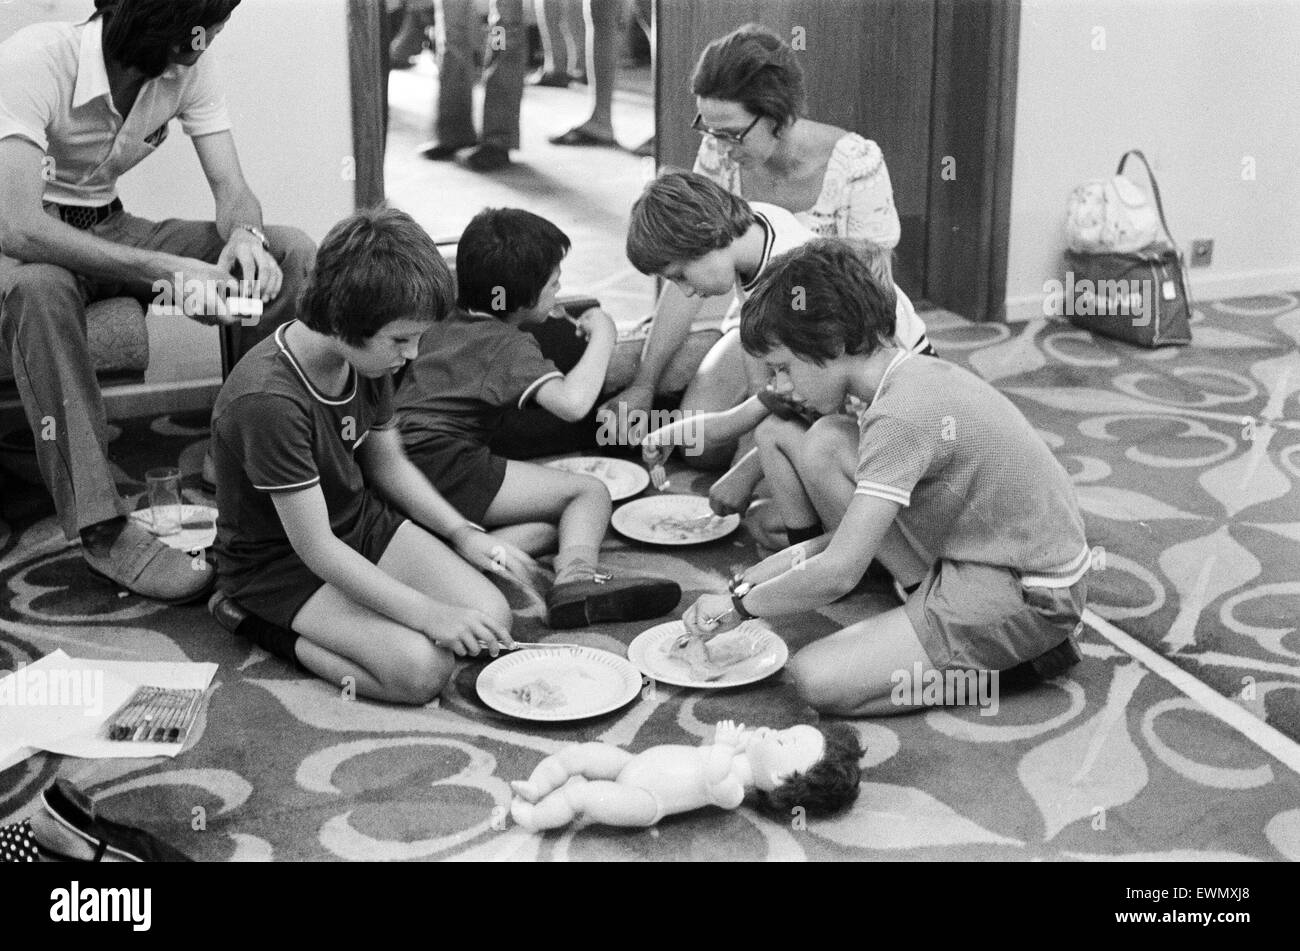 The Turkish invasion of Cyprus. Four boys squat on the floor at the Ledra Palace Hotel to eat a makeshift meal while - Stock Image